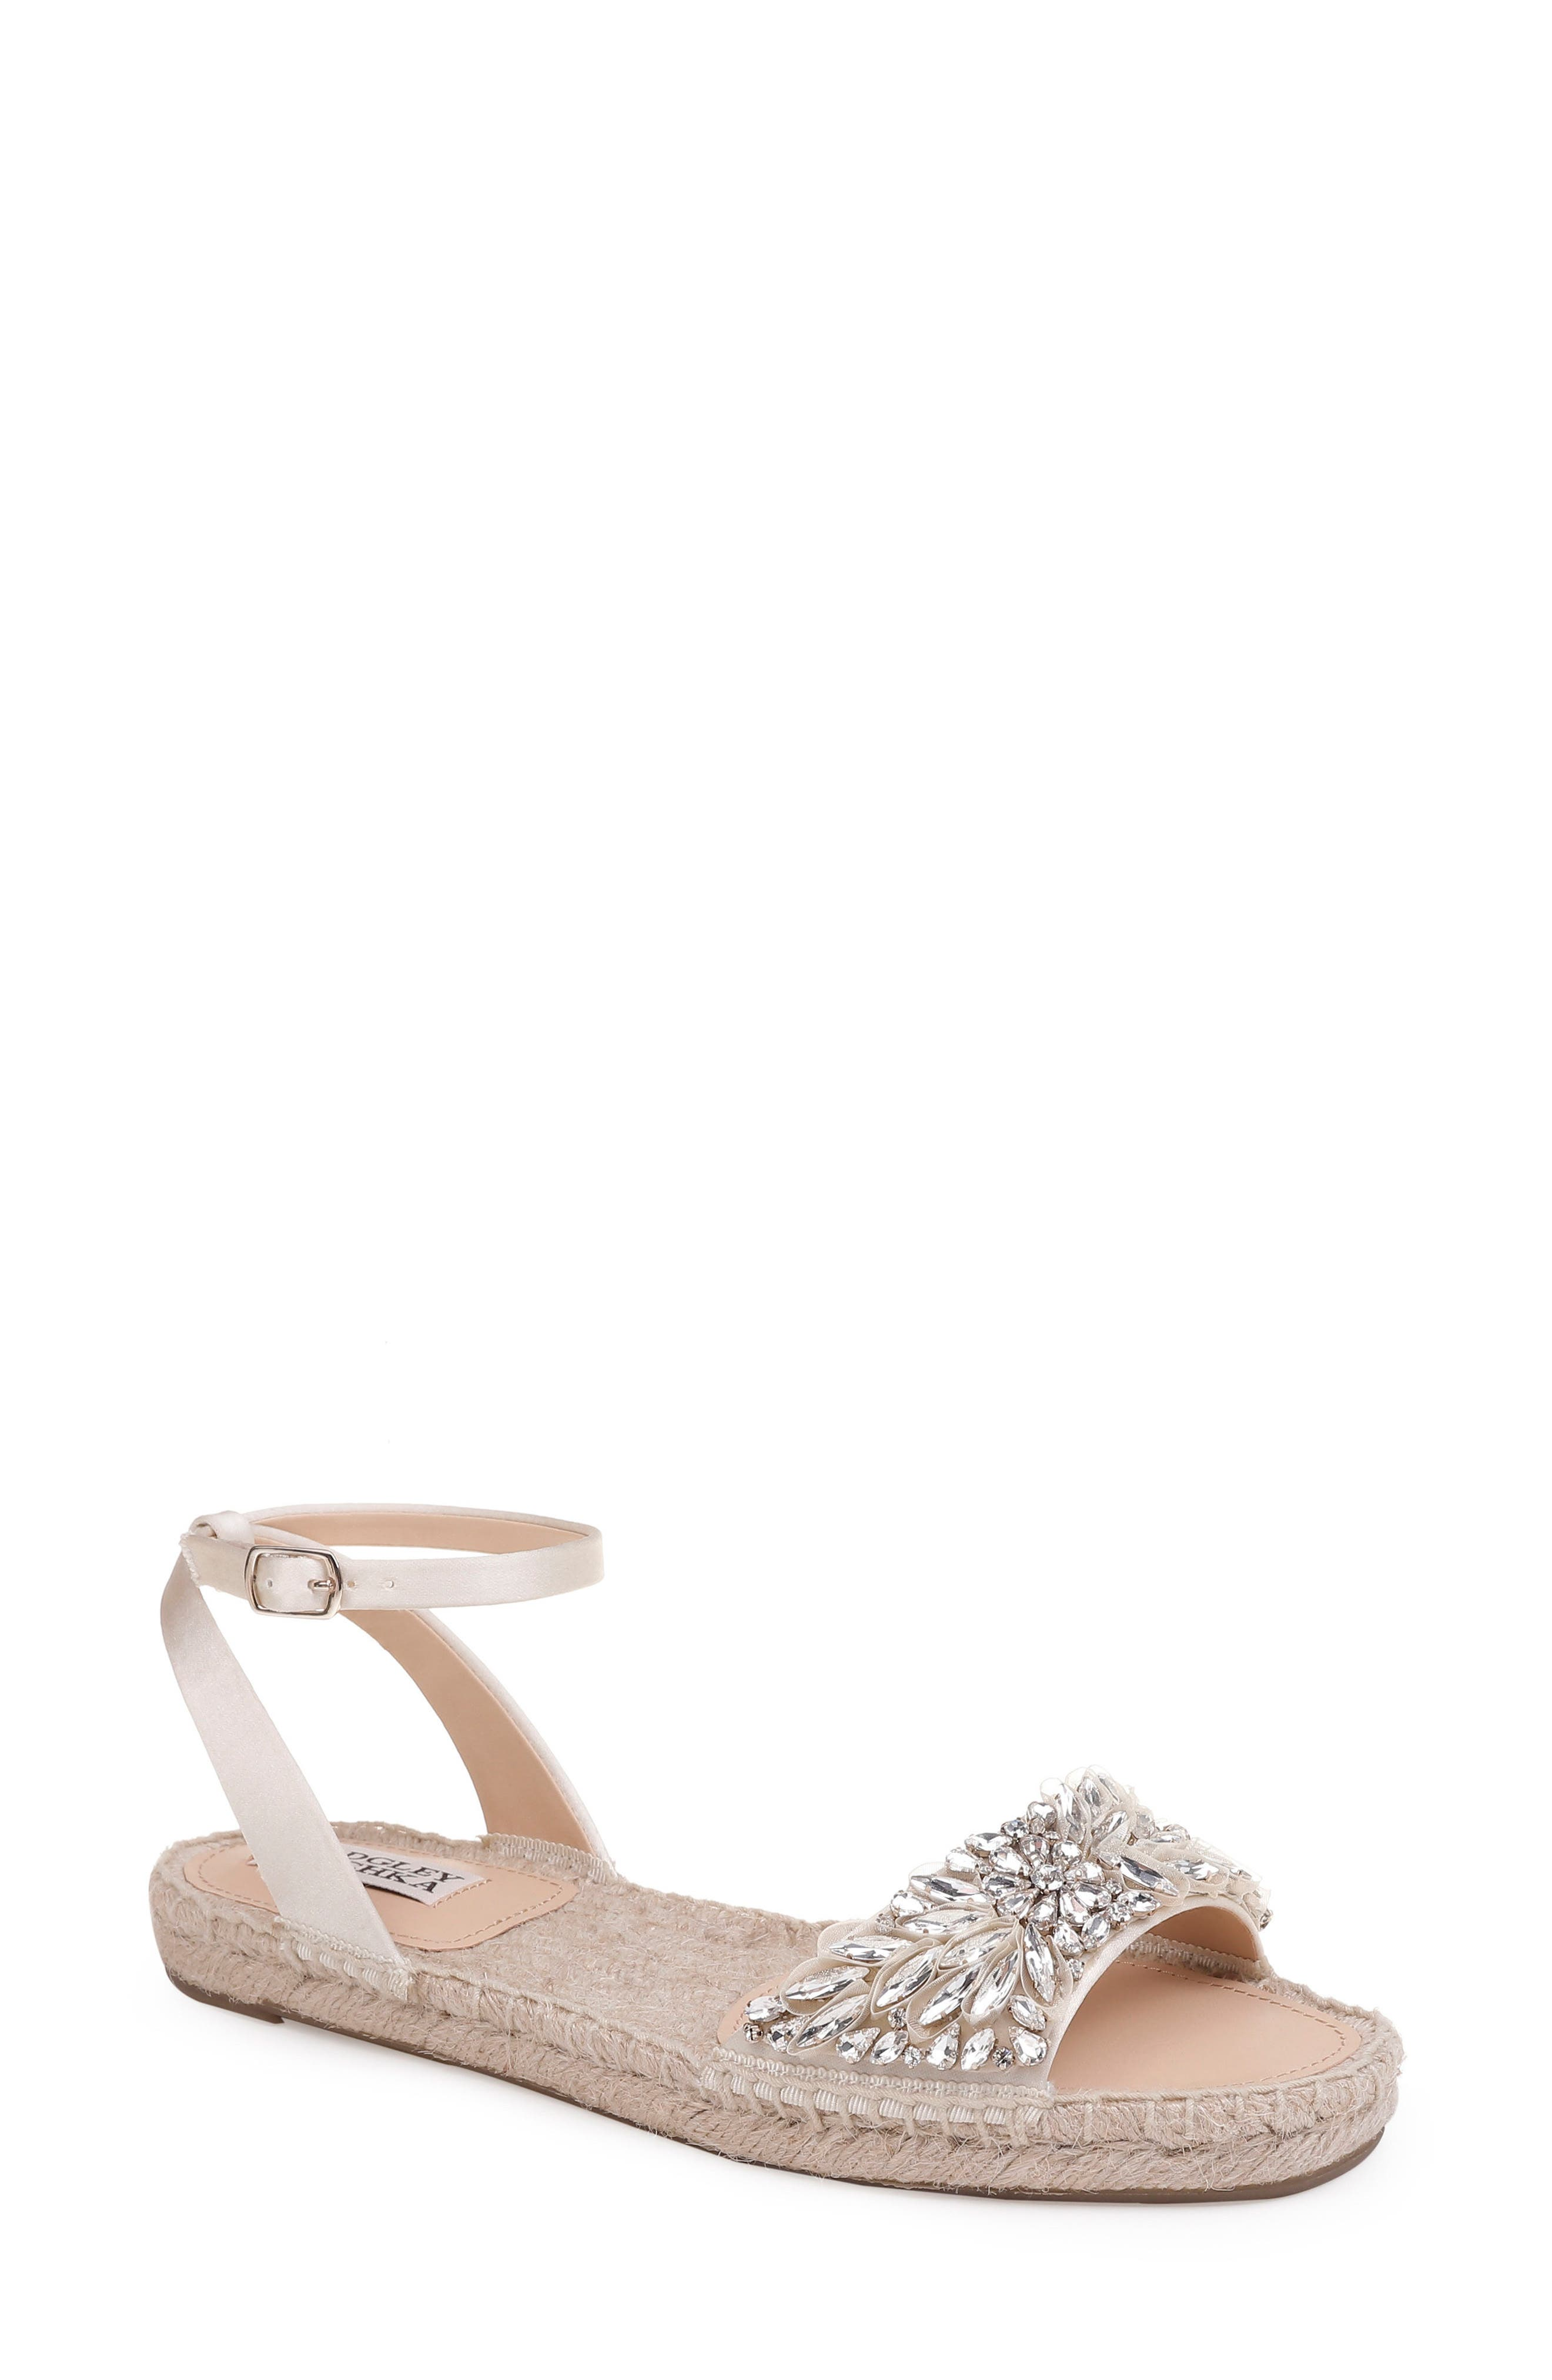 Satine Espadrille Sandal,                         Main,                         color, Ivory Satin